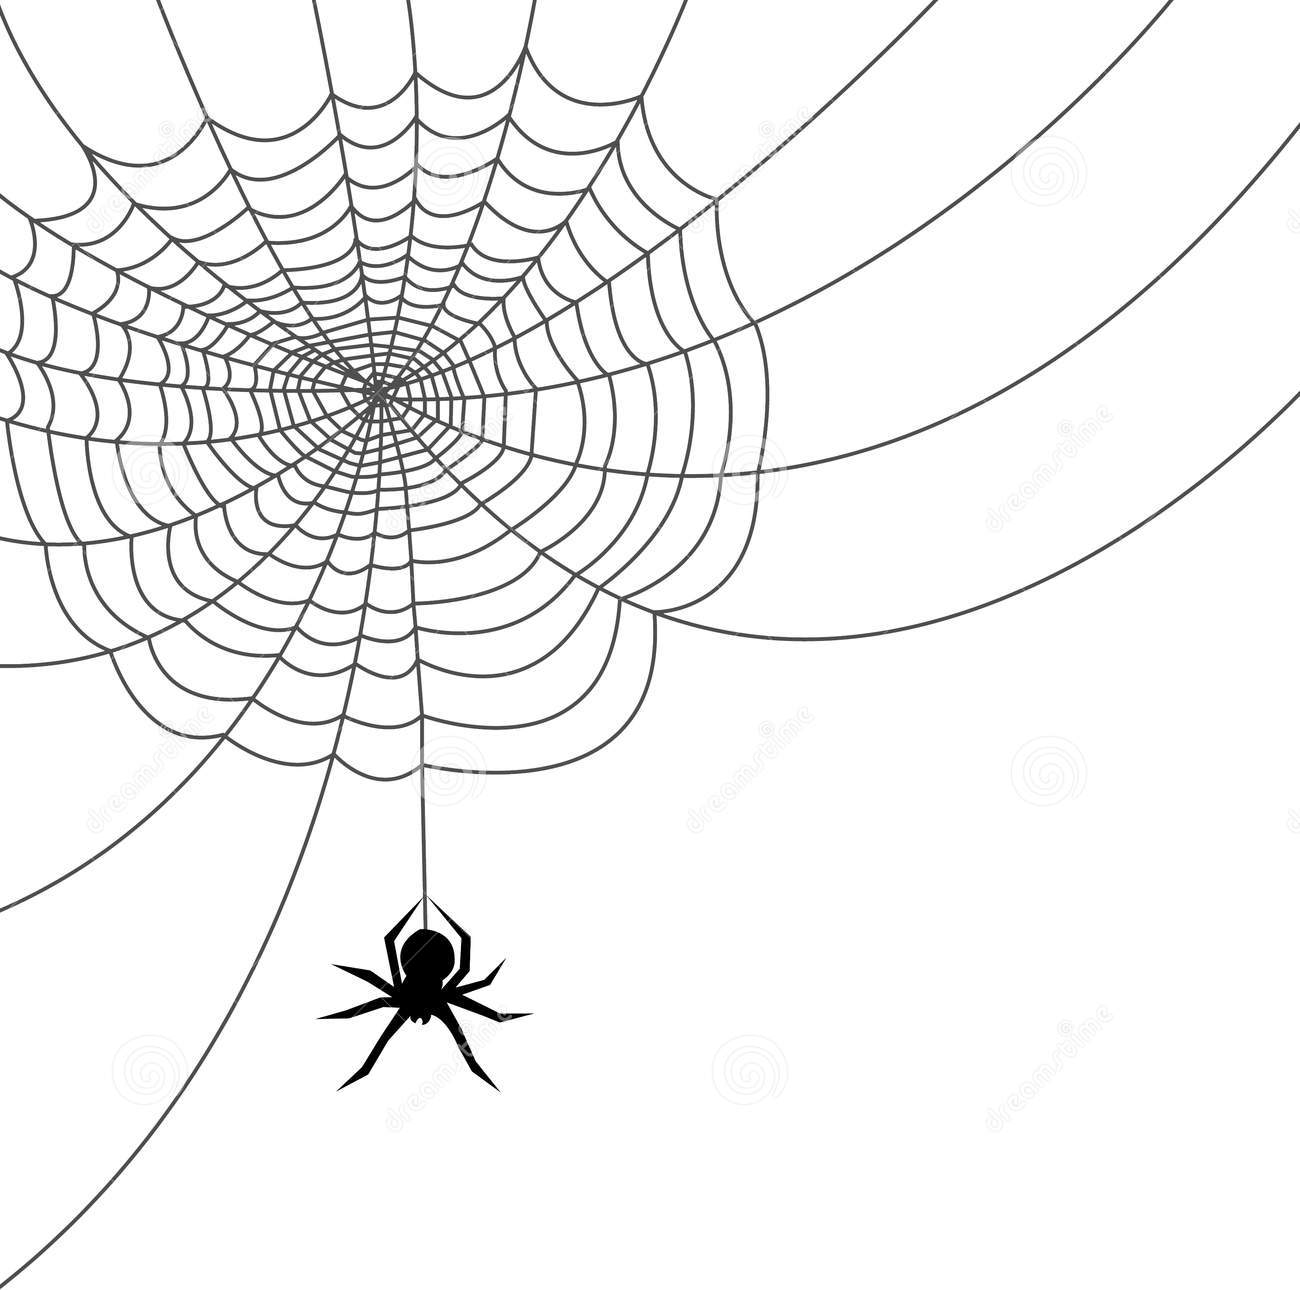 Spider spinning web clipart.